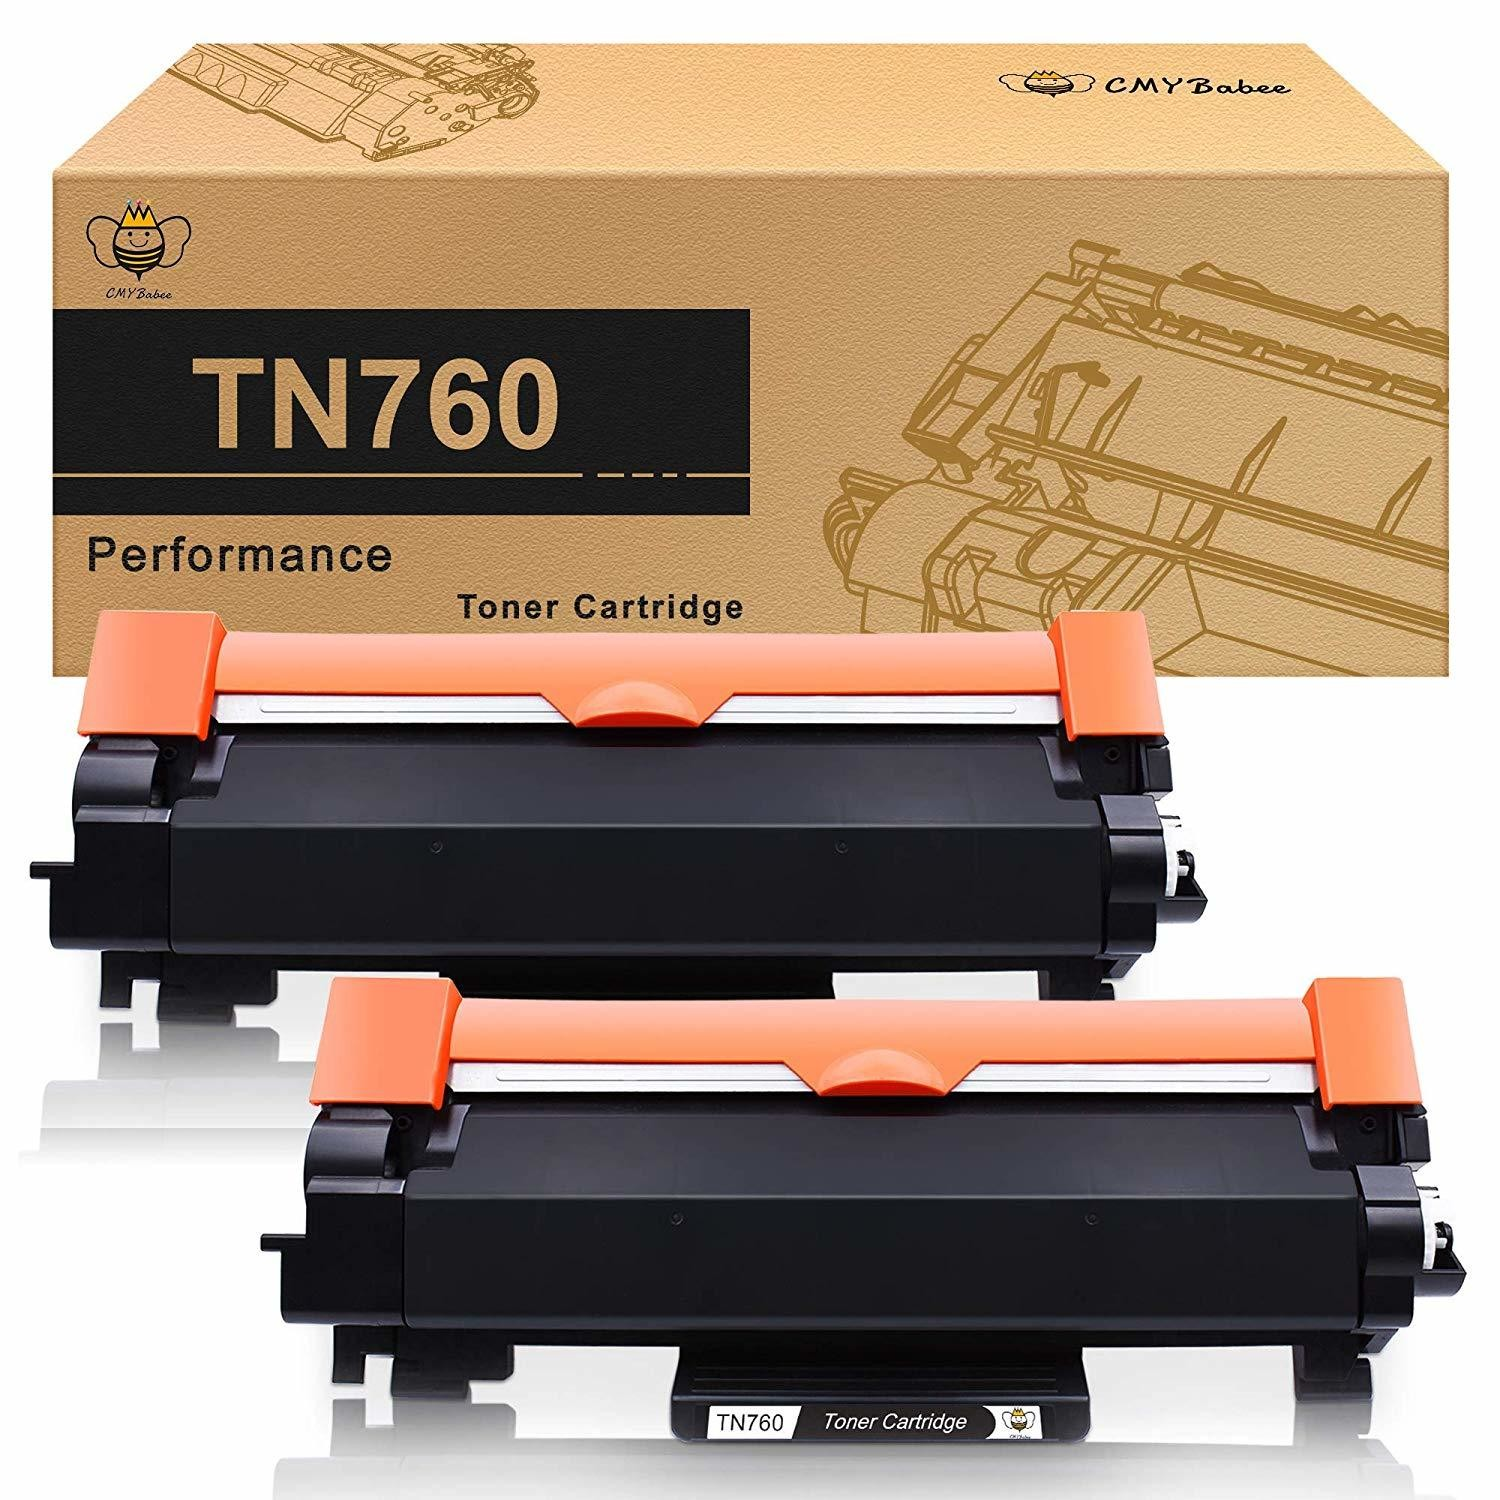 TN760 TN730 Toner 2 Pack CMYBabee with CHIP for Brother TN-760 TN-730 Black High